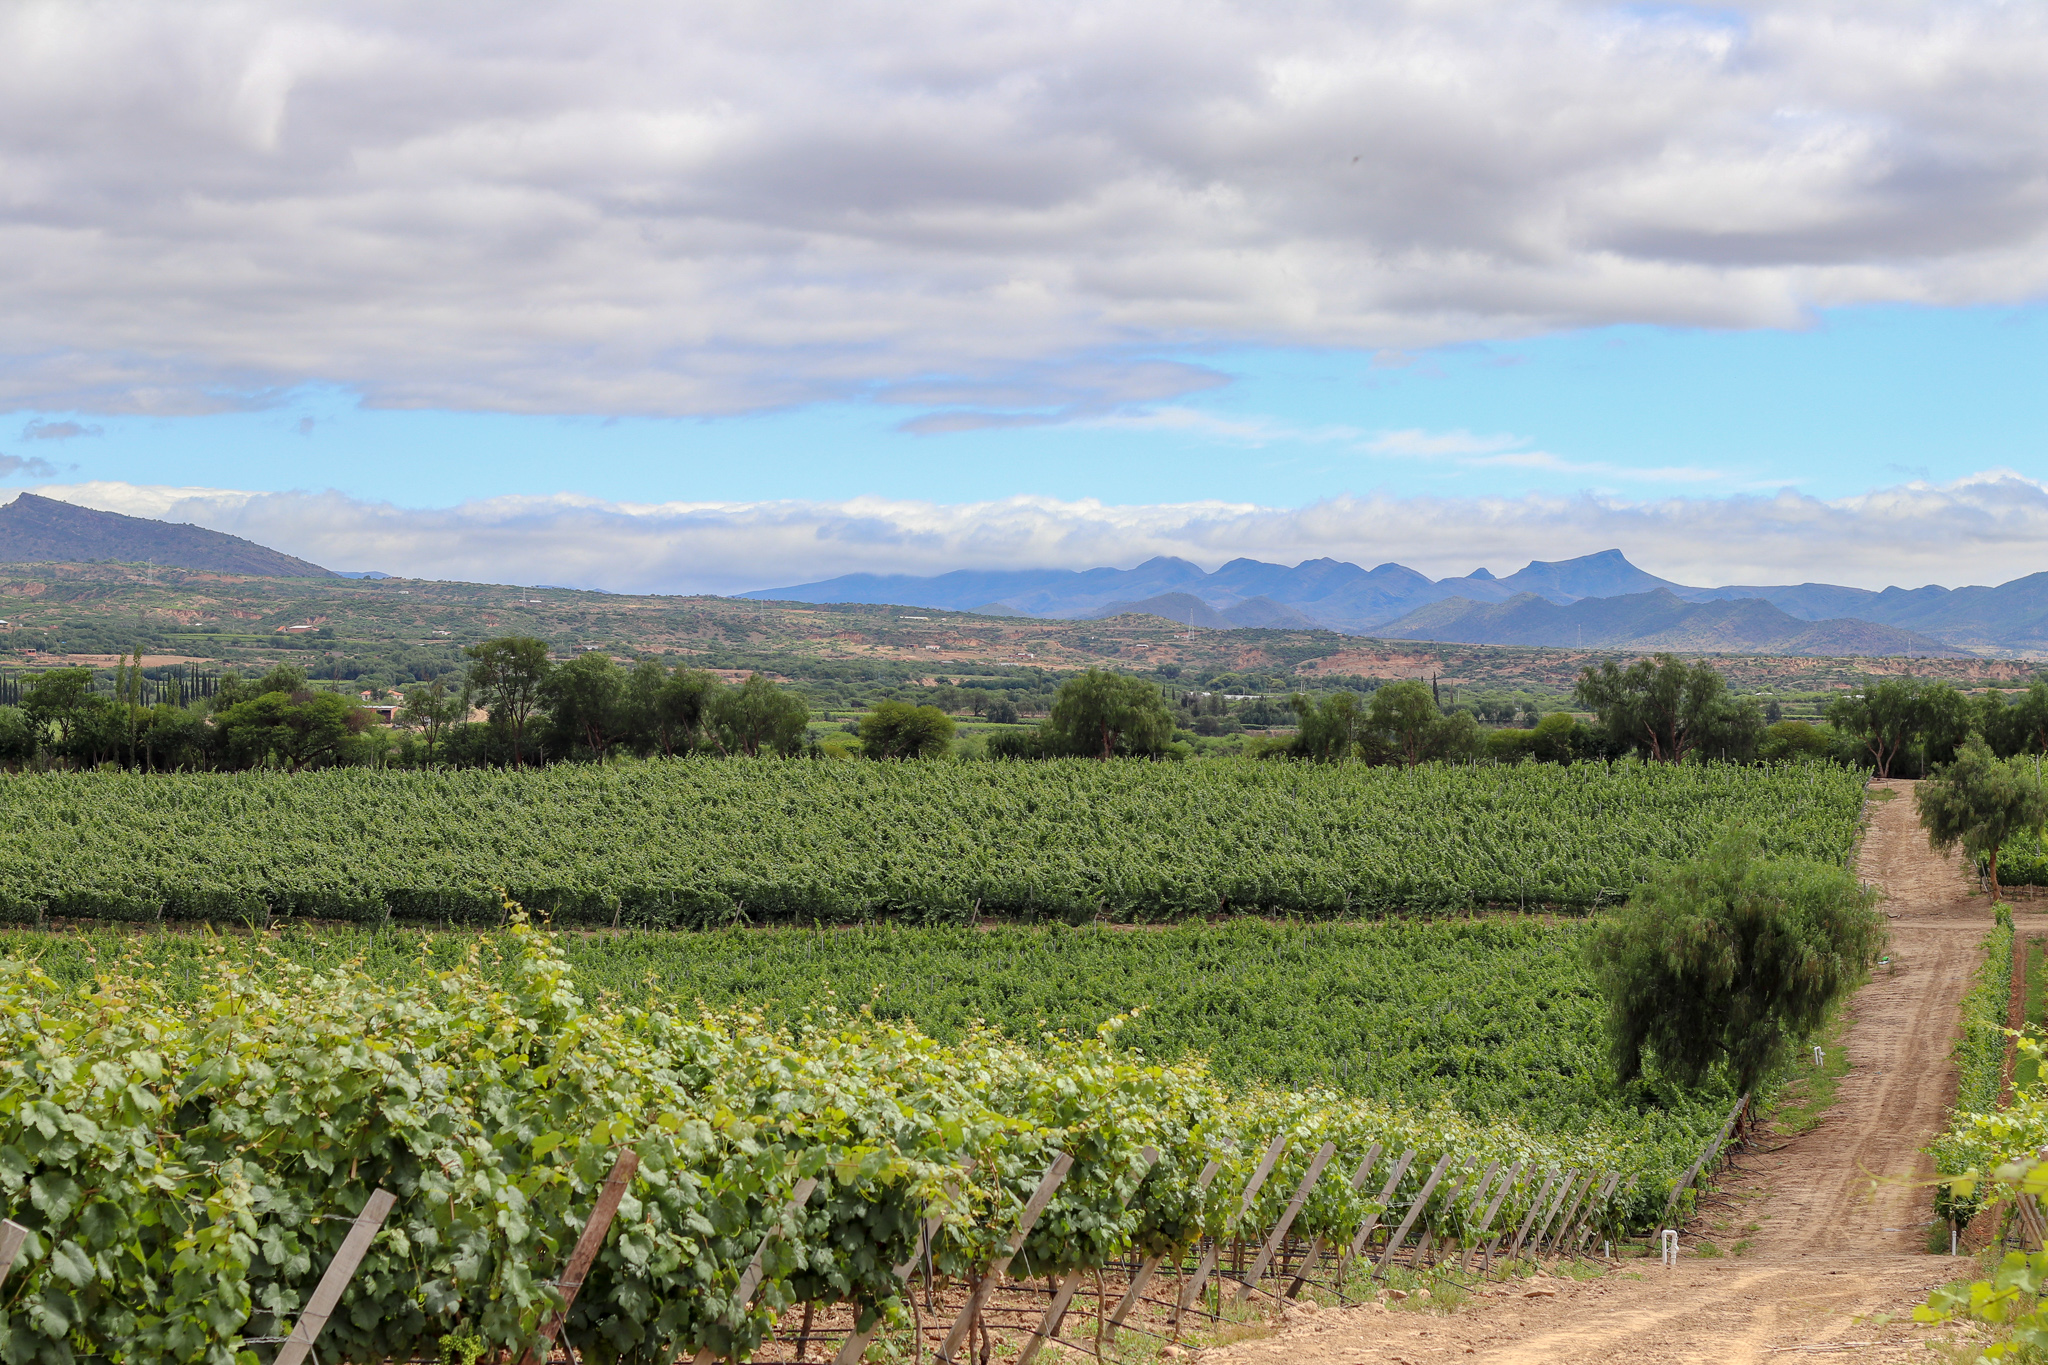 At around 2,000 meters above sea level, and at 21.5º latitude, Tarija receives higher doses of UV rays than most wine regions. The  UV Index  can regularly reach 12, posing an 'Extreme' risk to some people.